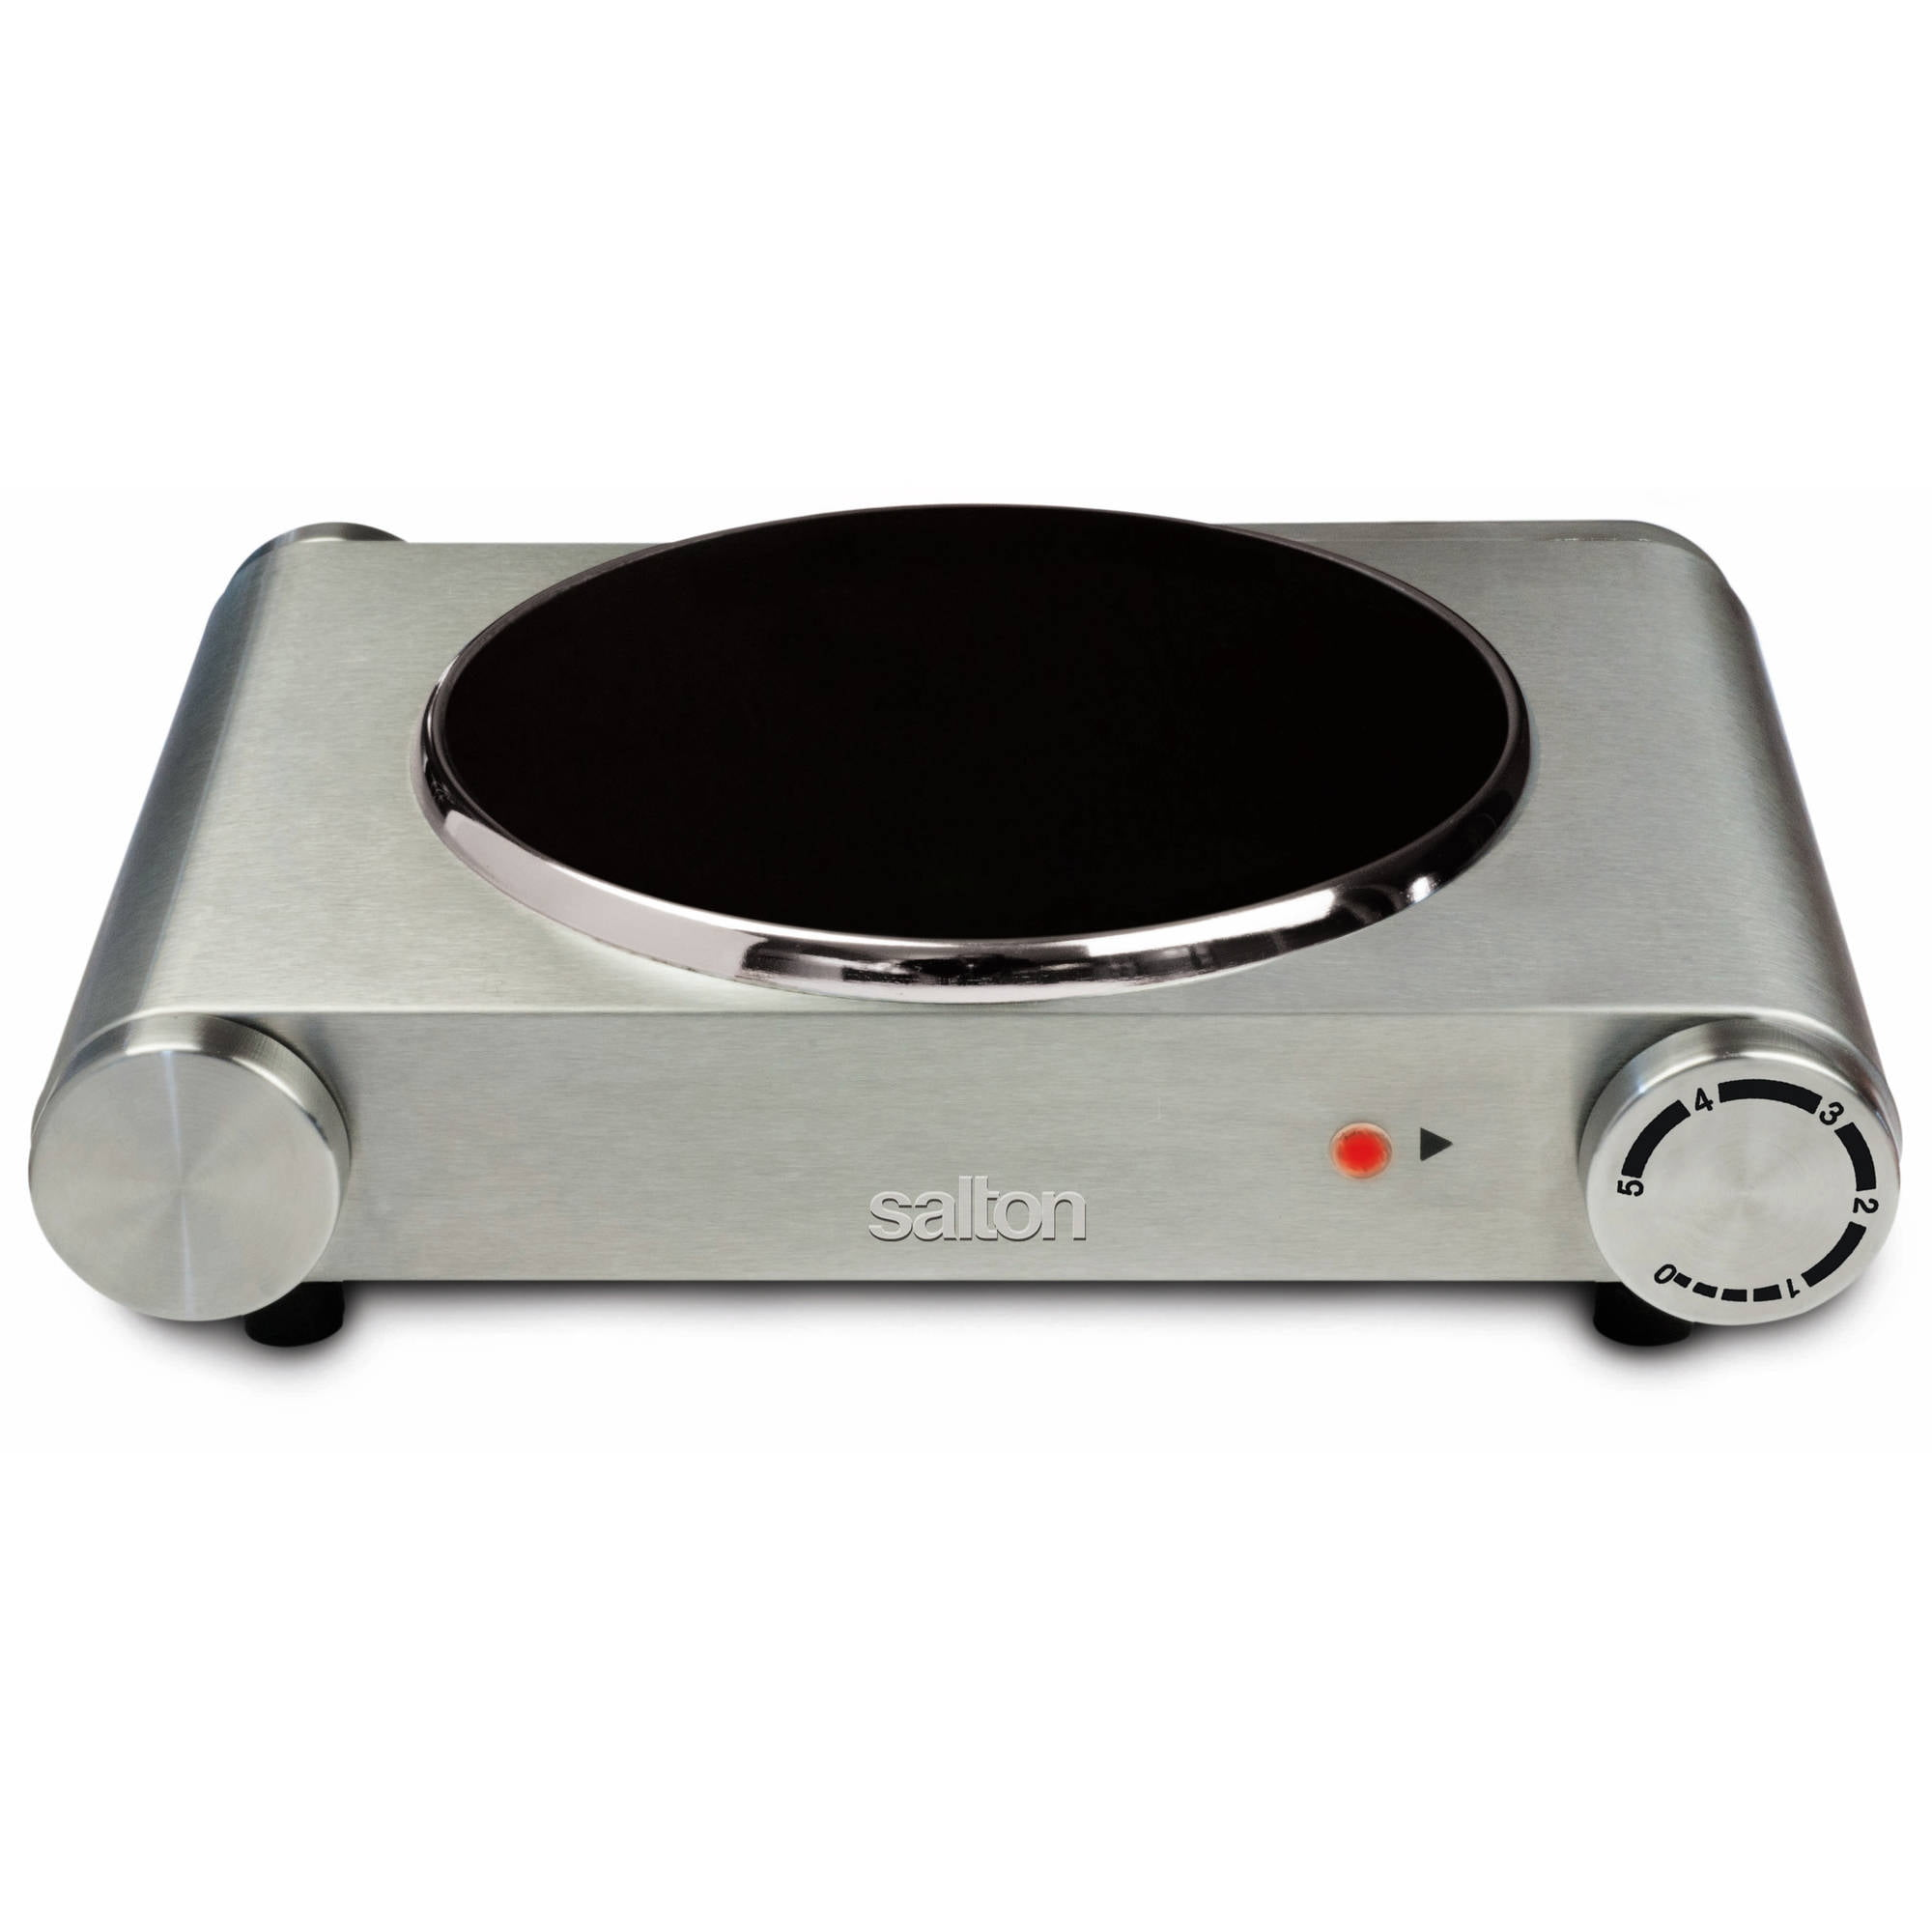 Salton Portable Infrared Cooktop, Single Burner